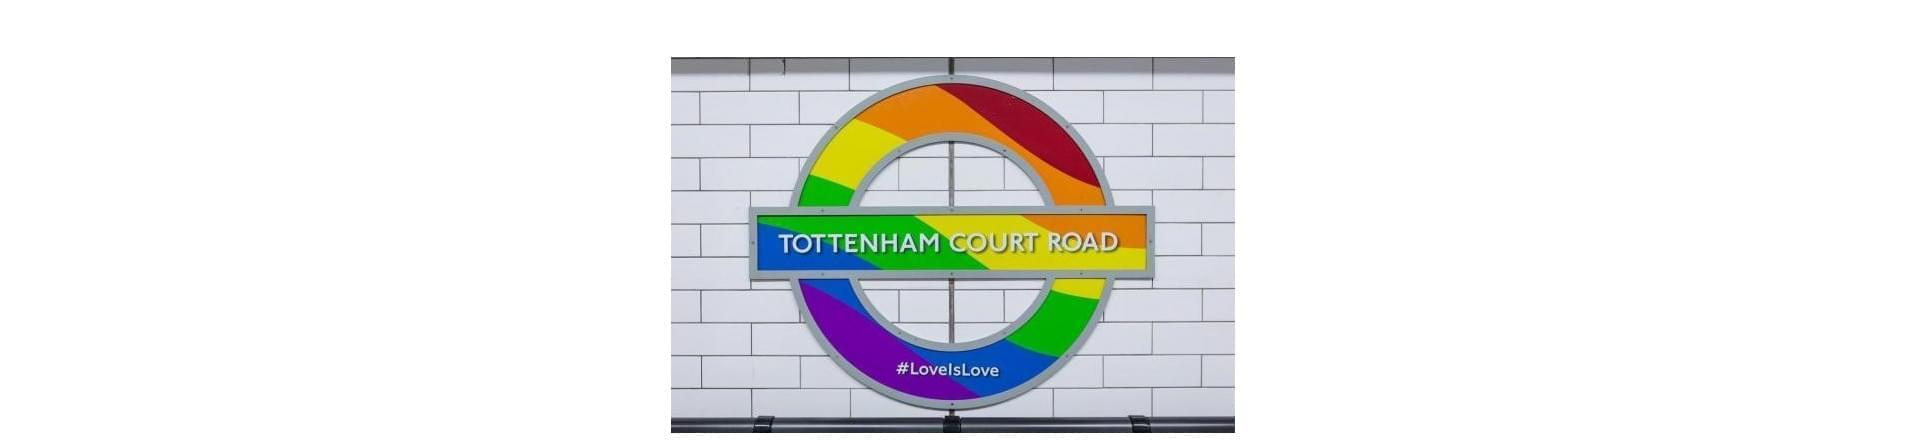 London Underground TfL Tottenham Court Road sign in rainbow colours